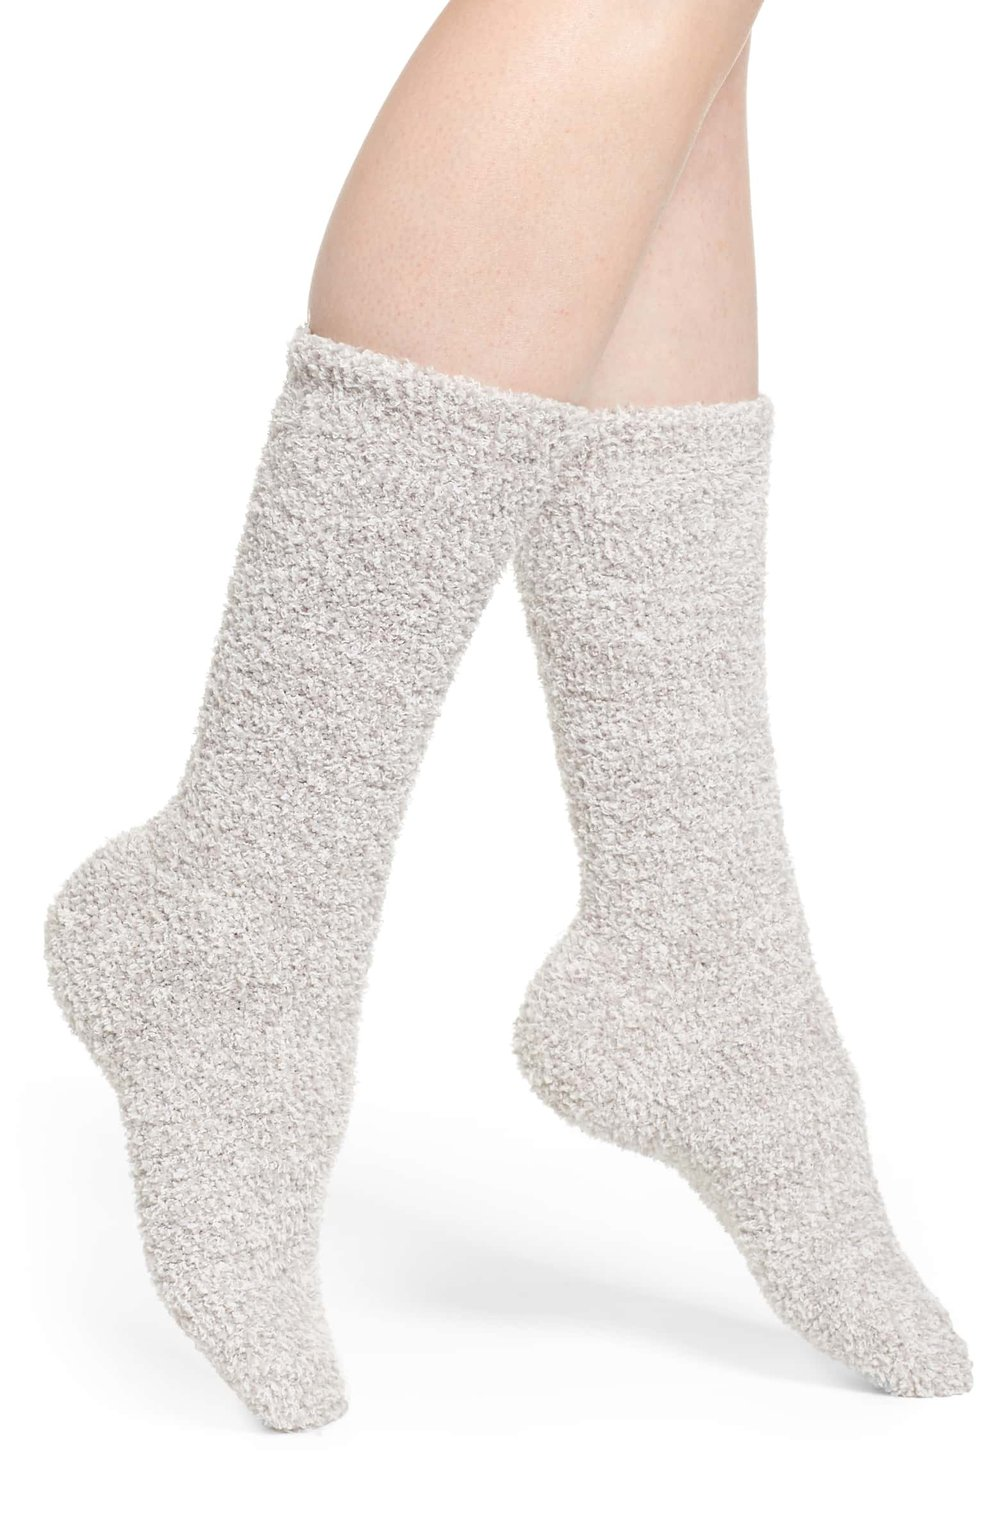 Barefoot Dreams CozyChic Socks - Ever wondered what a cloud feel like? Well know you can know!! Brett gave me all three colors of these socks in my stocking last Christmas and I'm obsessed. Barefoot Dreams' iconic plush material makes every sock feel like sandpaper (dramatic, but true). I wear these around the house, tucked into boots, and if they made them in a short no-show style, I'd buy those too.P.S. These would make a great gift!